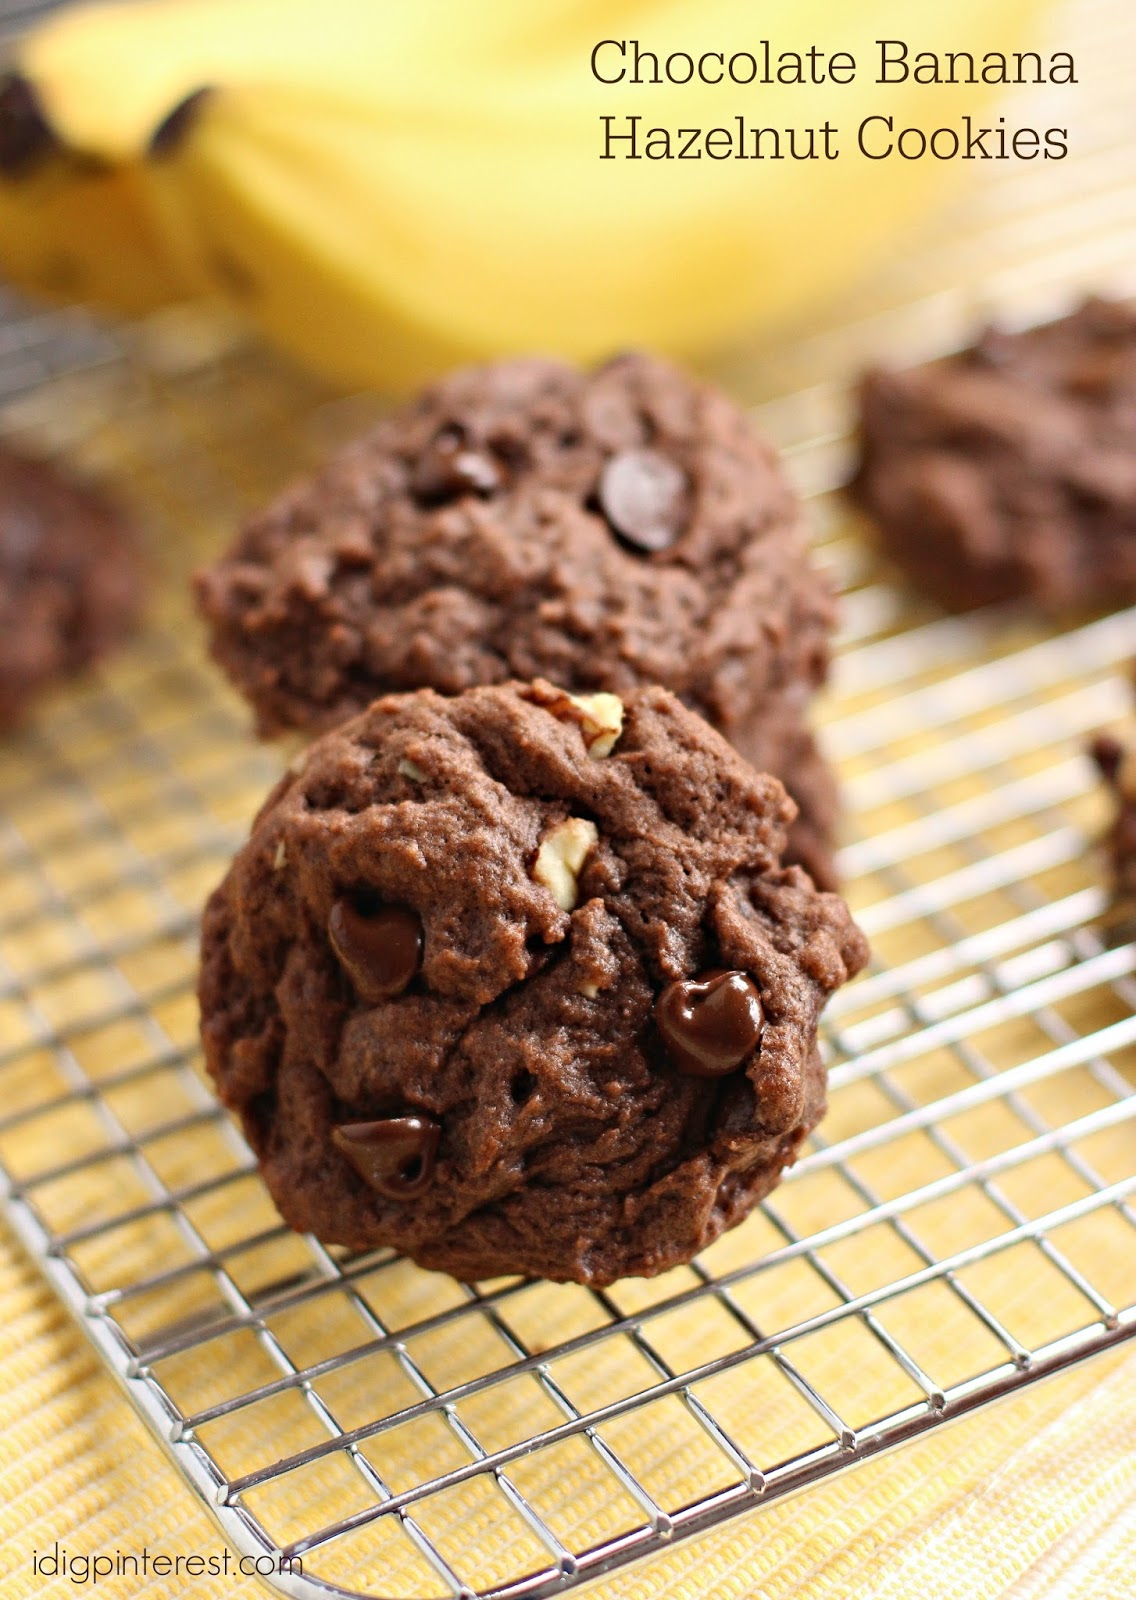 Chocolate Banana Hazelnut Cookies - I Dig Pinterest